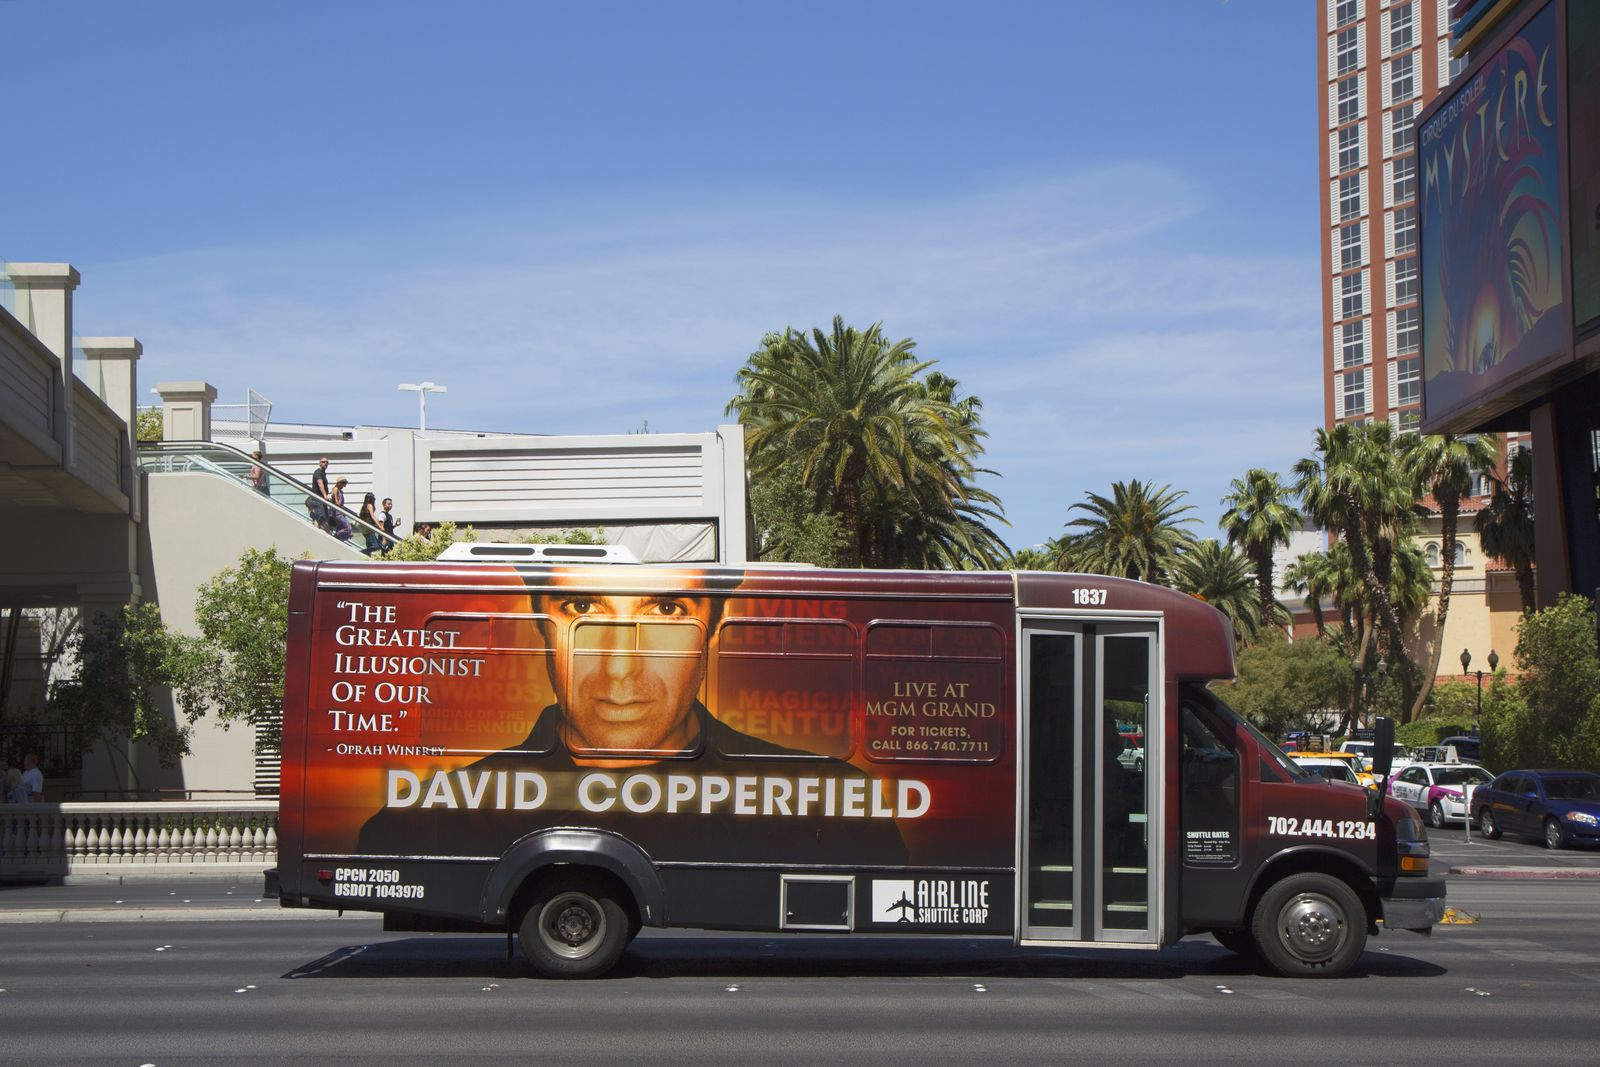 David Copperfield, kdo by ho neznal?